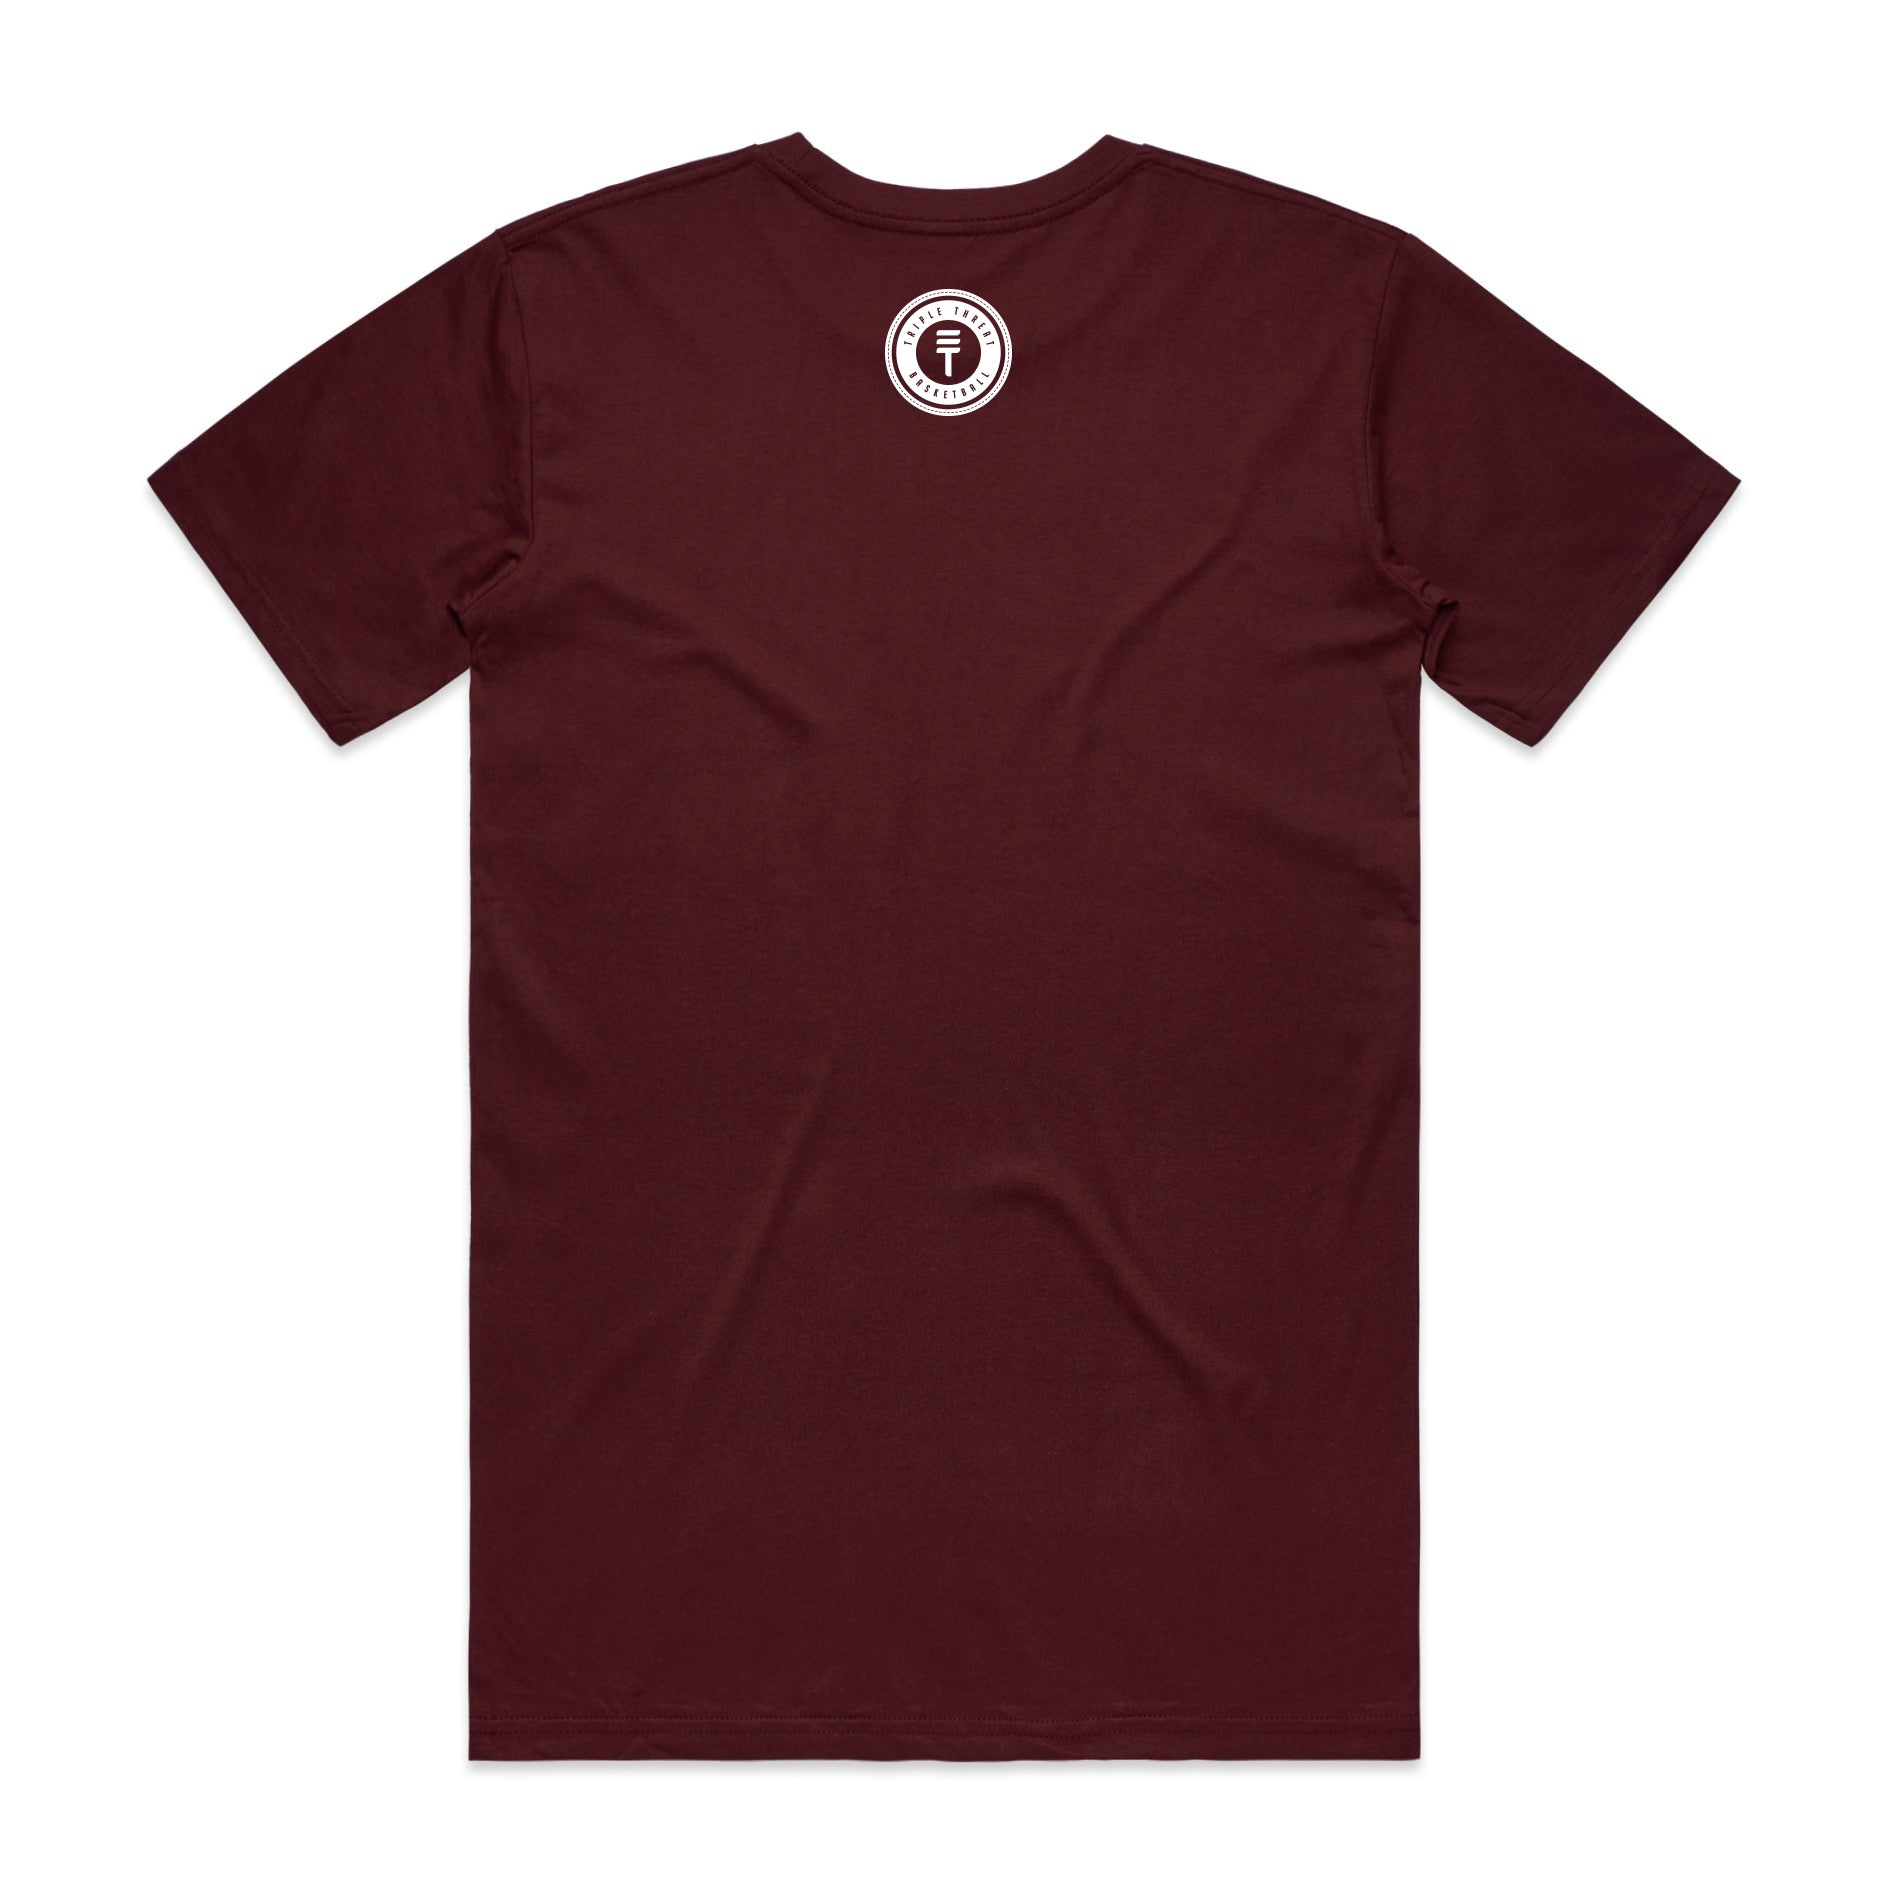 NEWTOWN T-SHIRT - MAROON